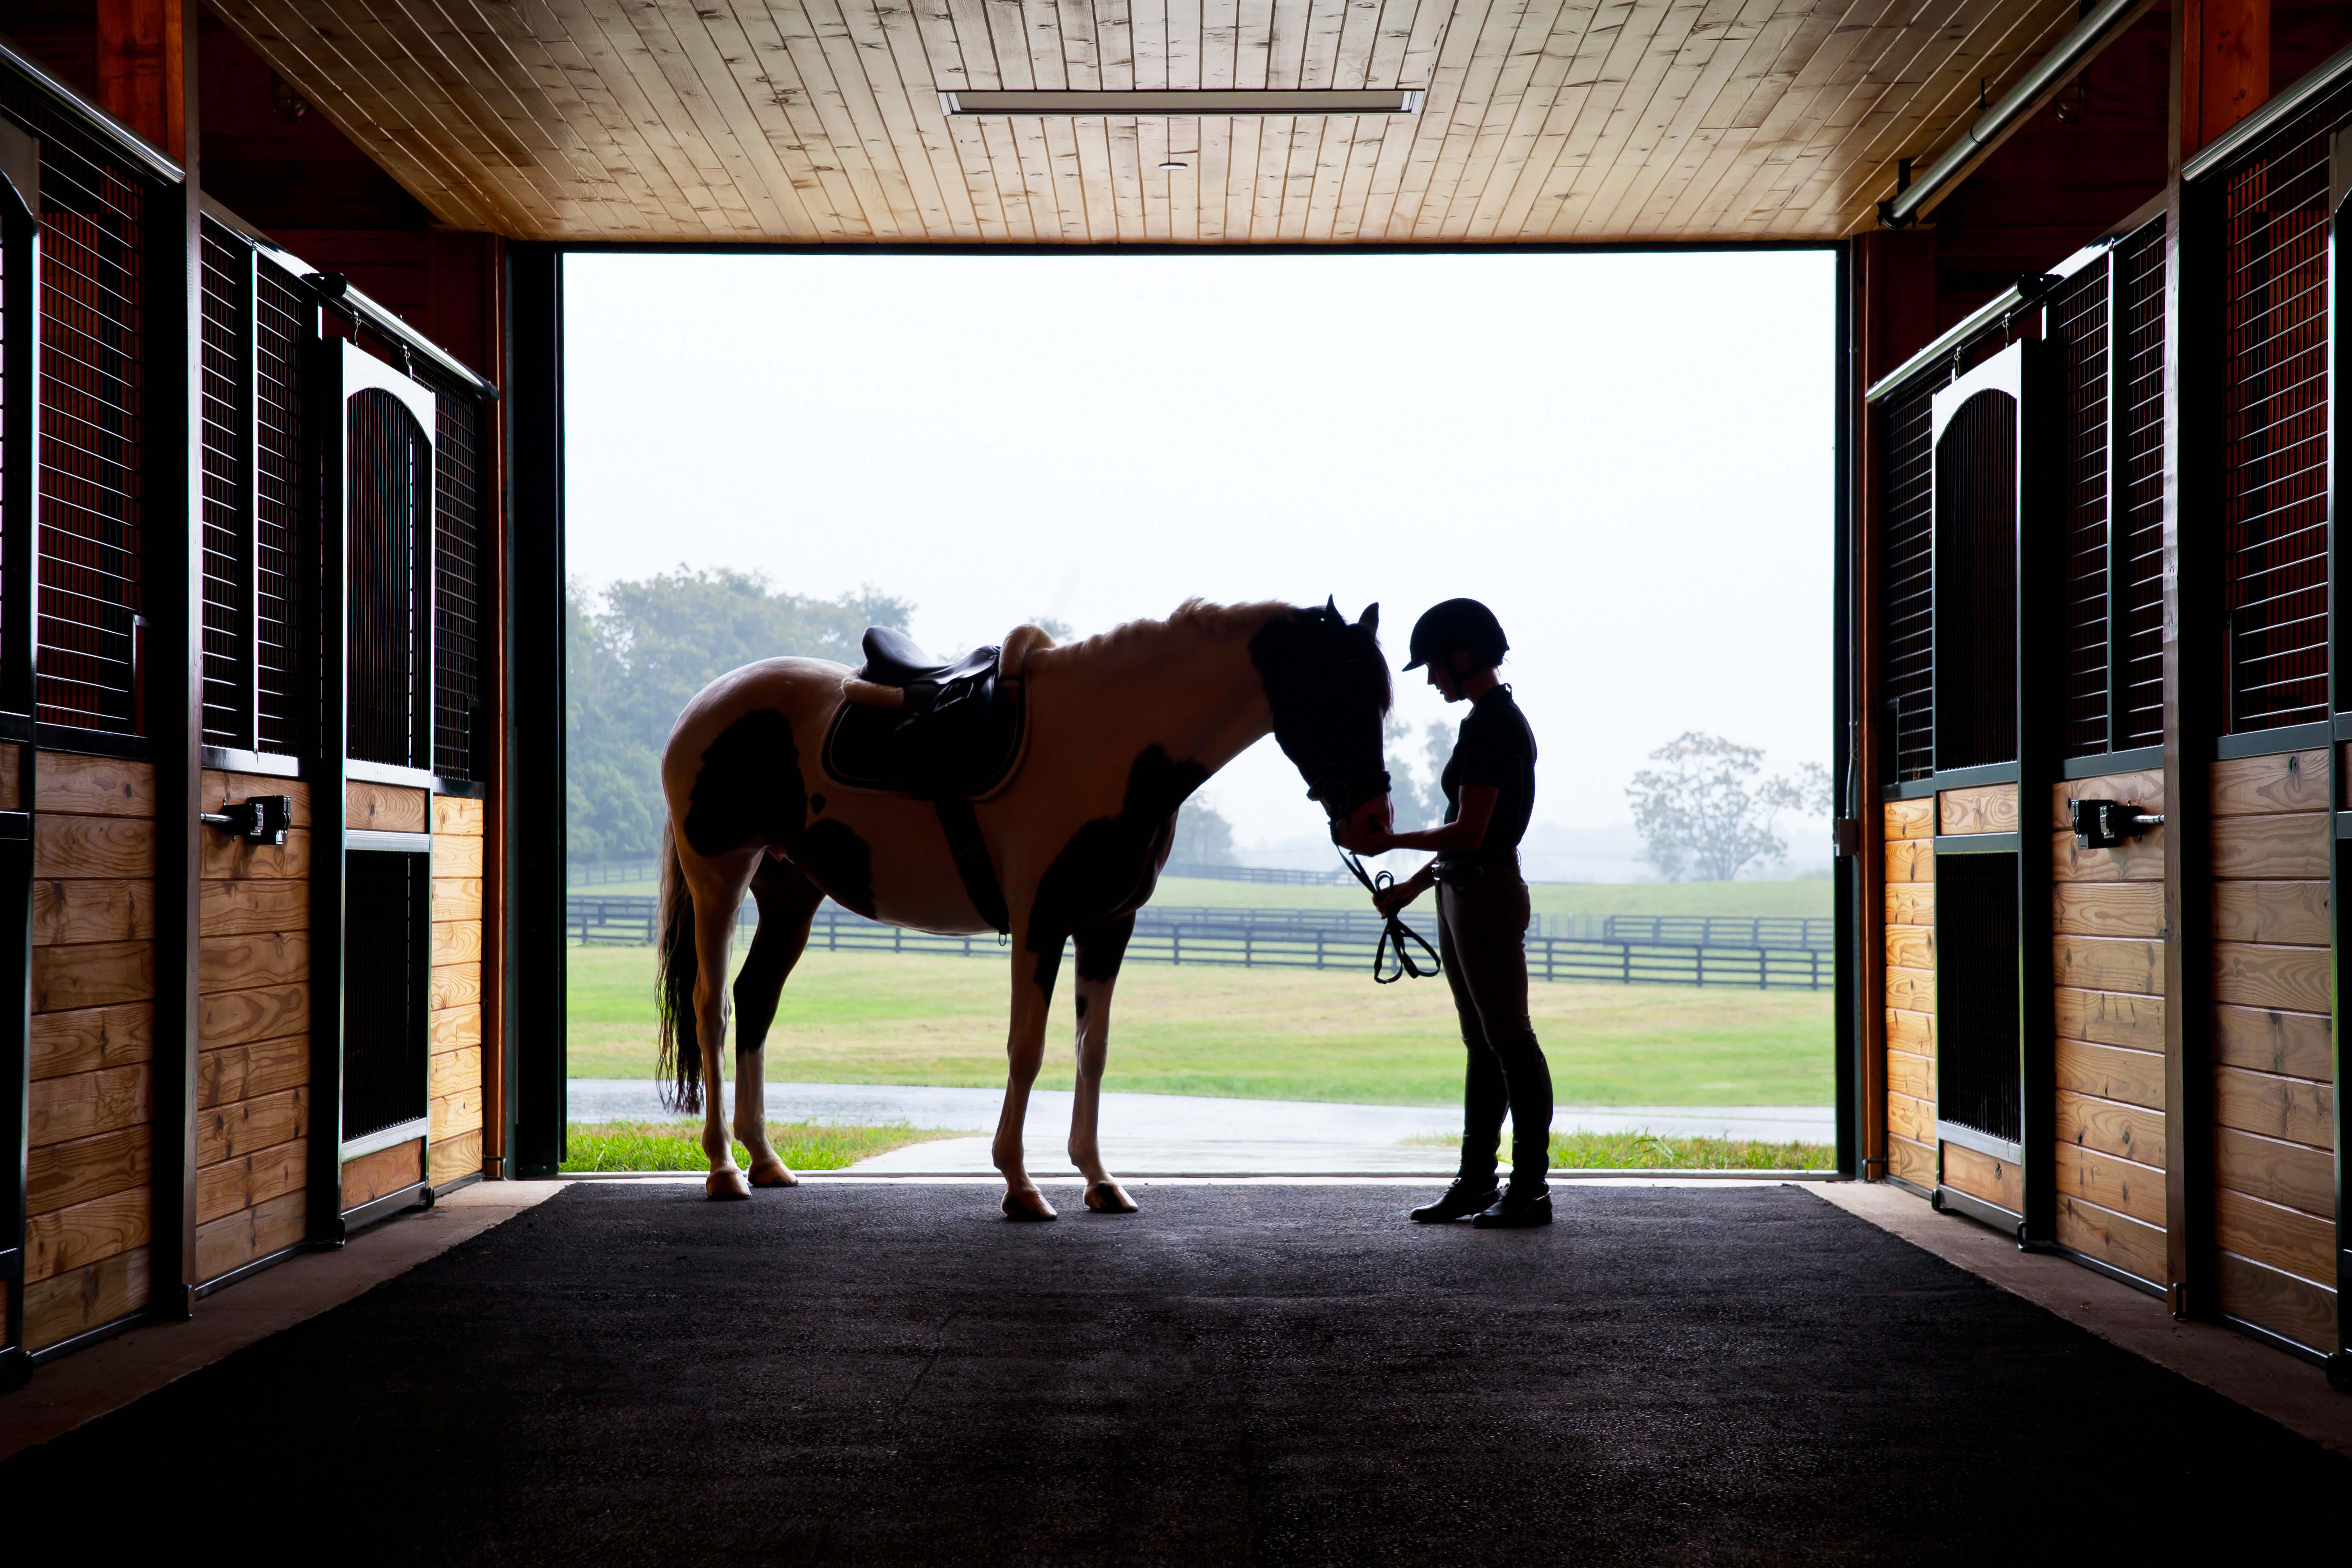 Country Outdoor Activities Ranch Resort Romance Trip Ideas Weekend Getaways photograph image horse like mammal stable horse